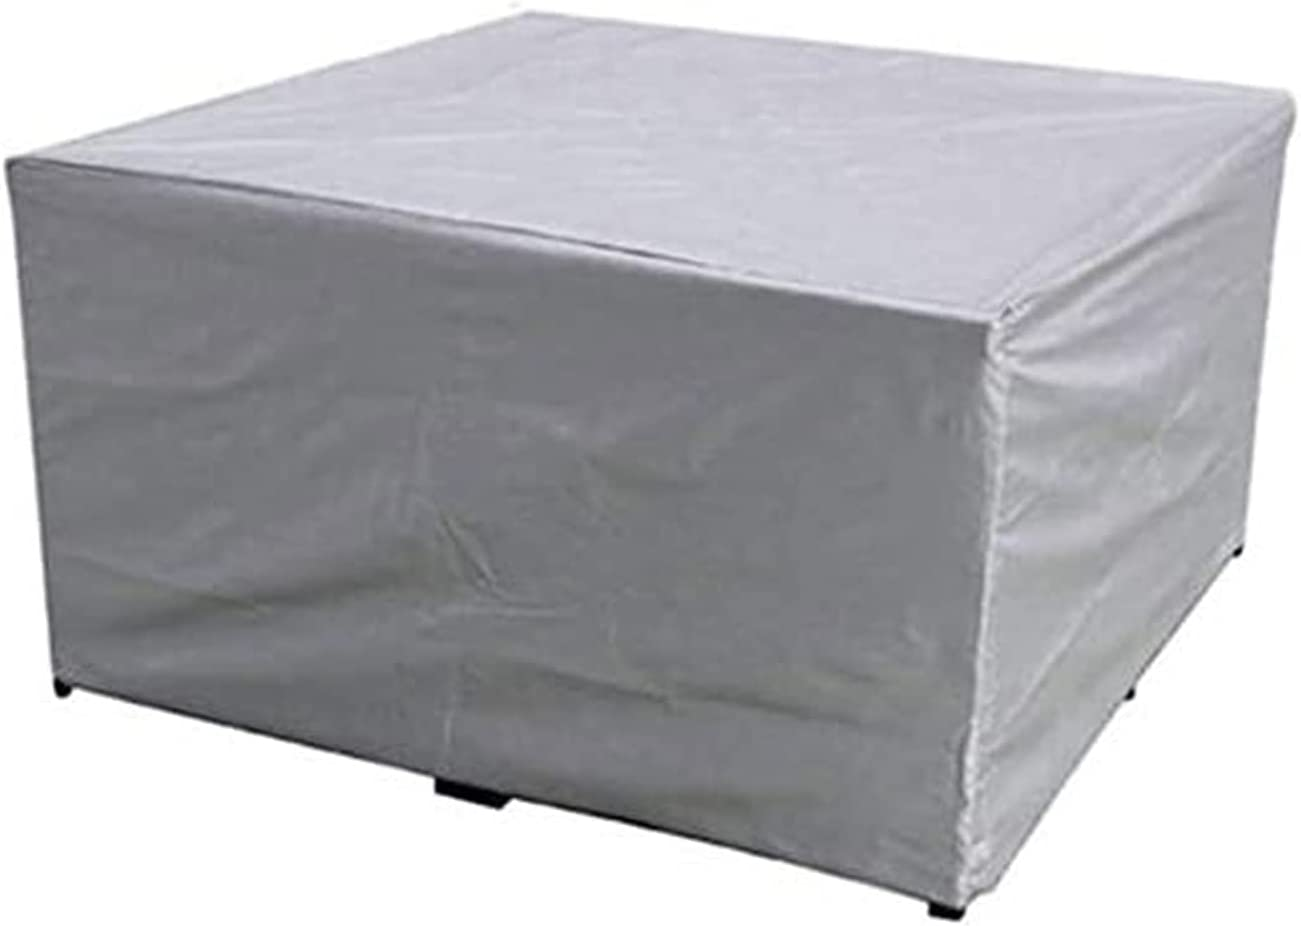 LFOZ Chicago Mall 55 Sizes Patio Waterproof Co Outdoor Furniture Cheap mail order specialty store Garden Cover